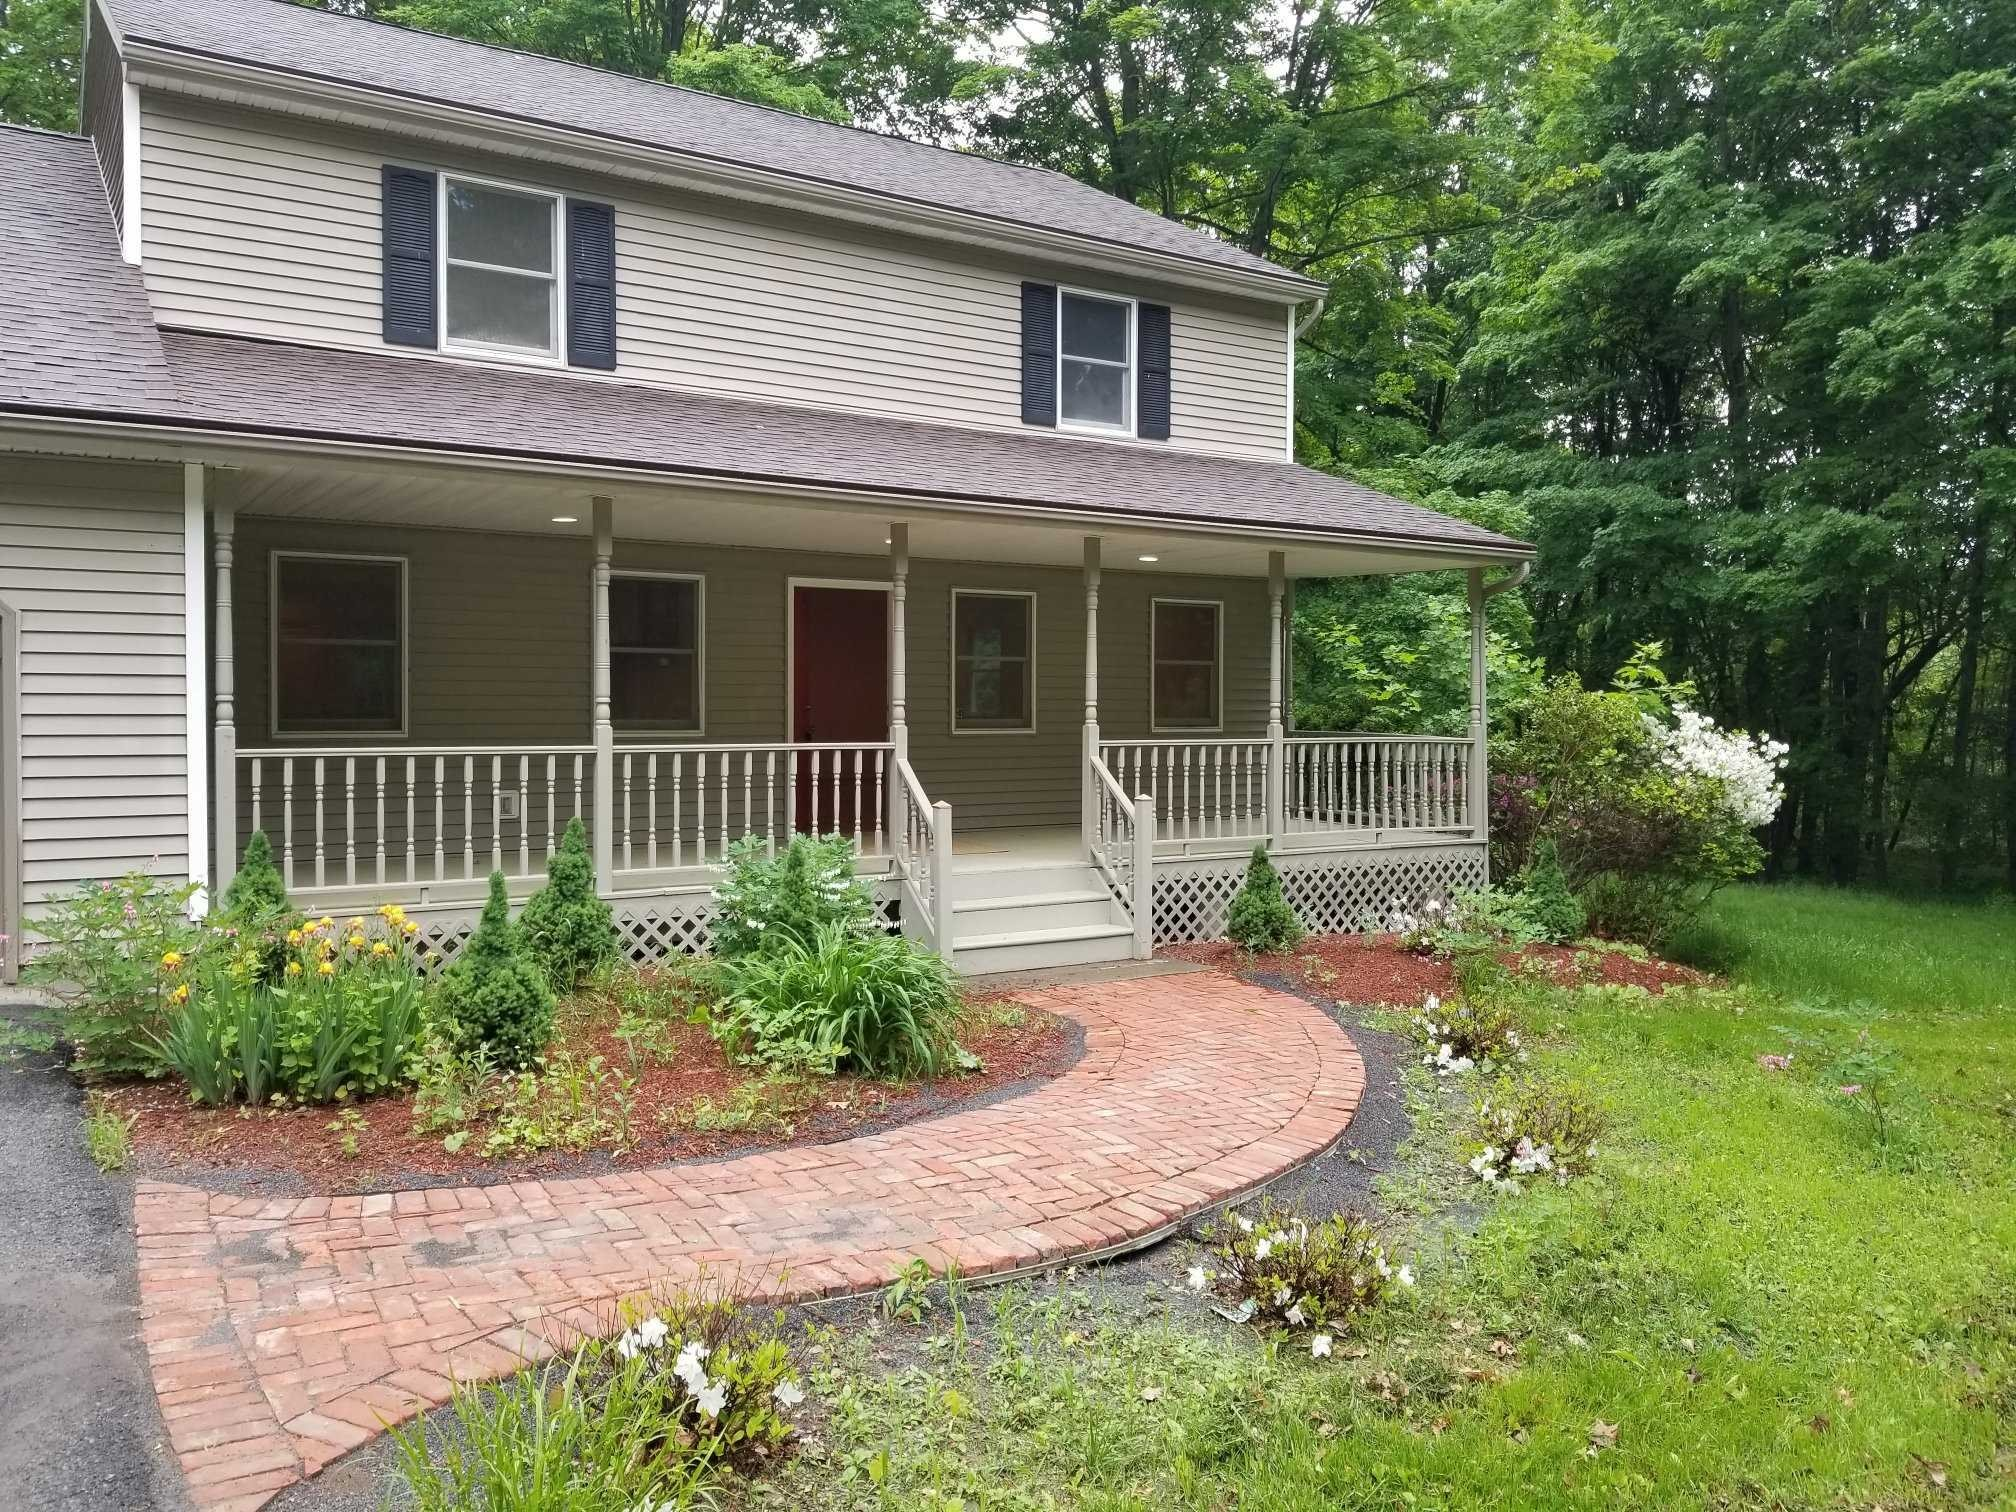 Single Family Home for Sale at 459 SHELLY HILL ROAD 459 SHELLY HILL ROAD Stanfordville, New York 12581 United States